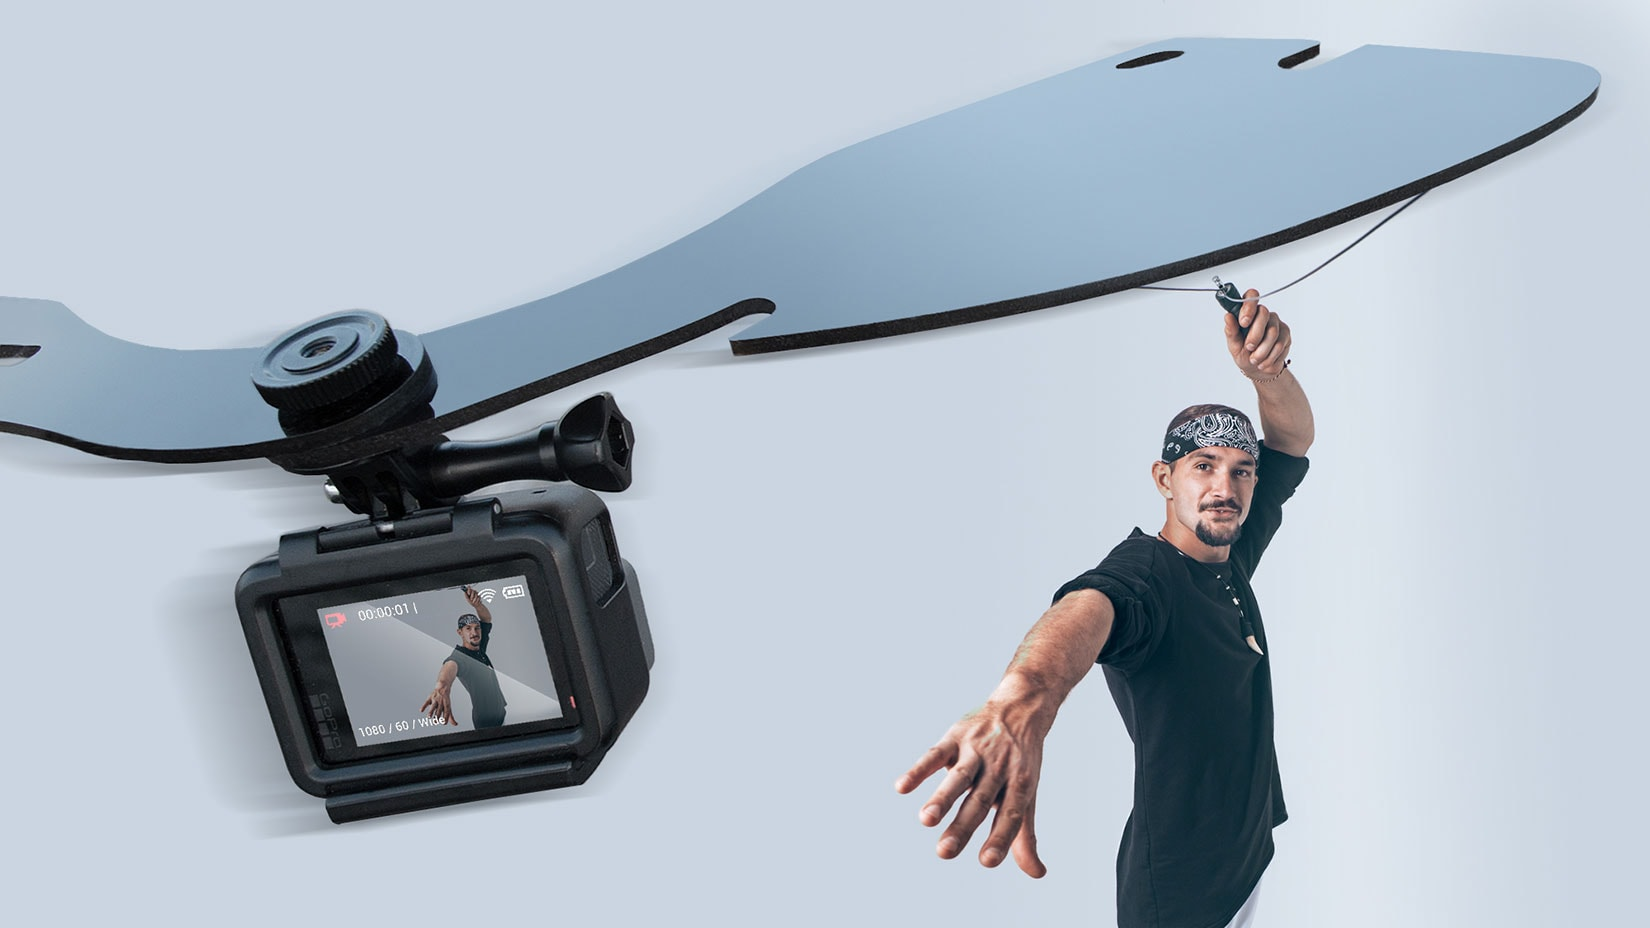 bullet time selfie video gadget